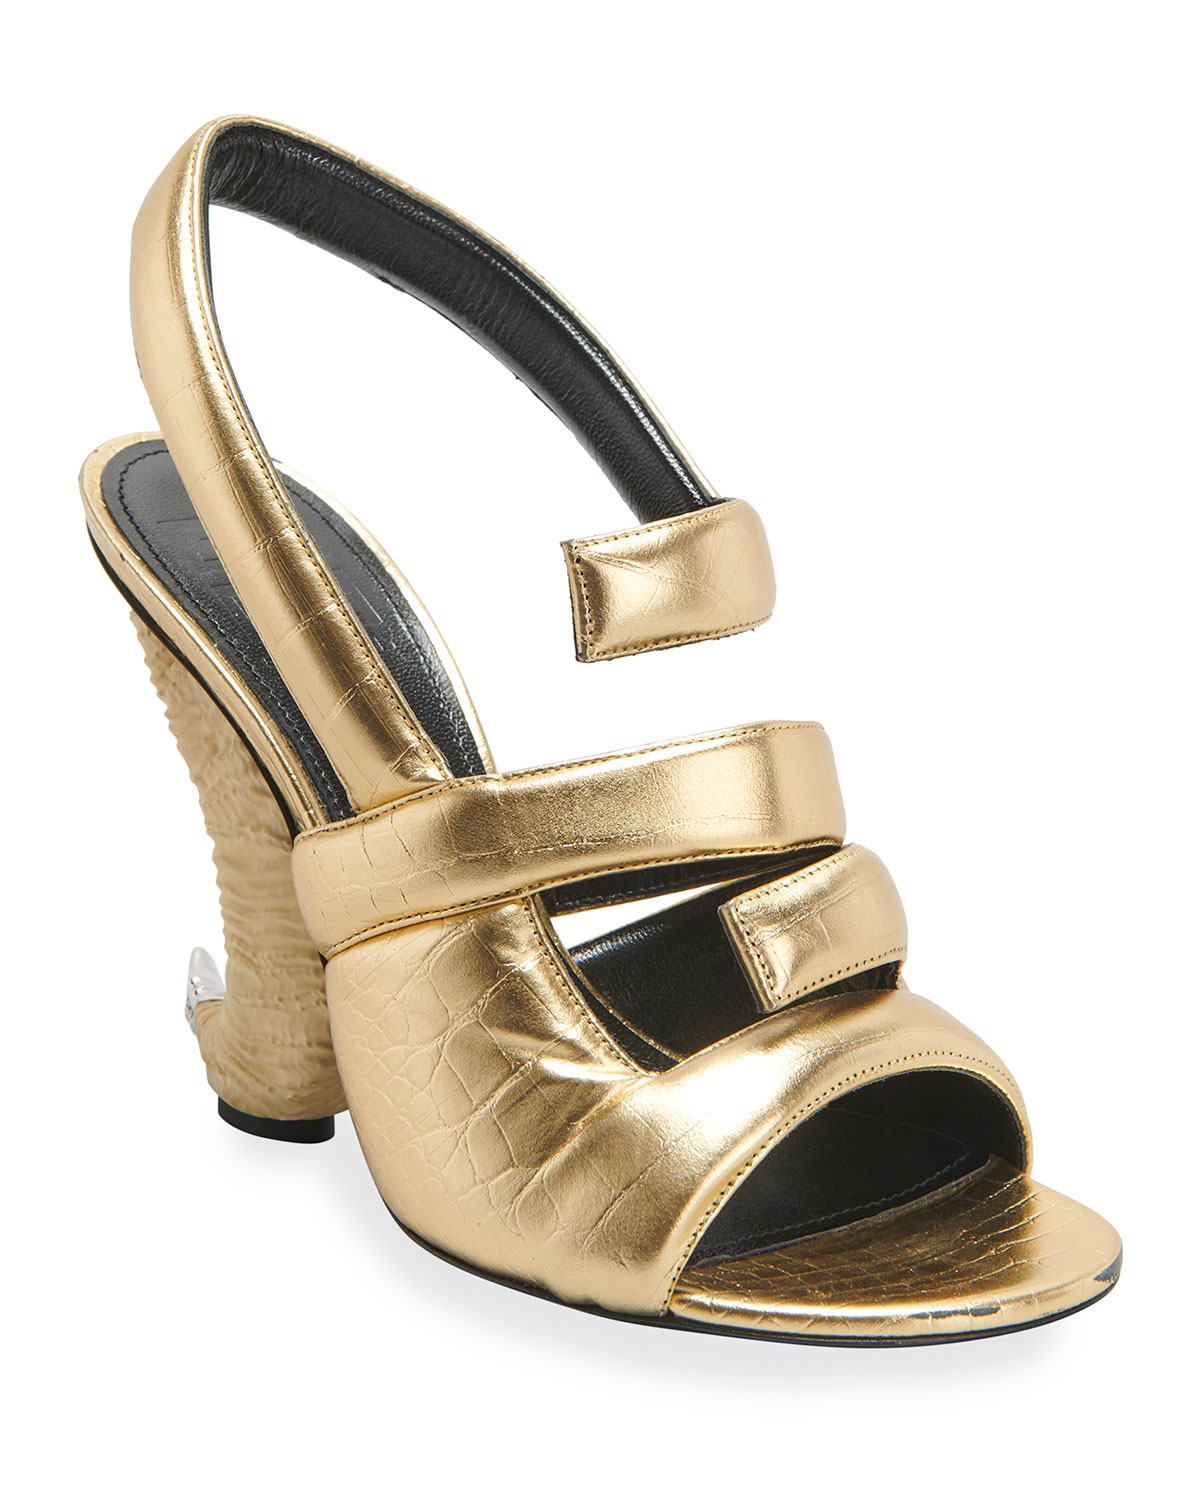 Givenchy Leathers SHOW HORN 4G METALLIC SLINGBACK SANDALS